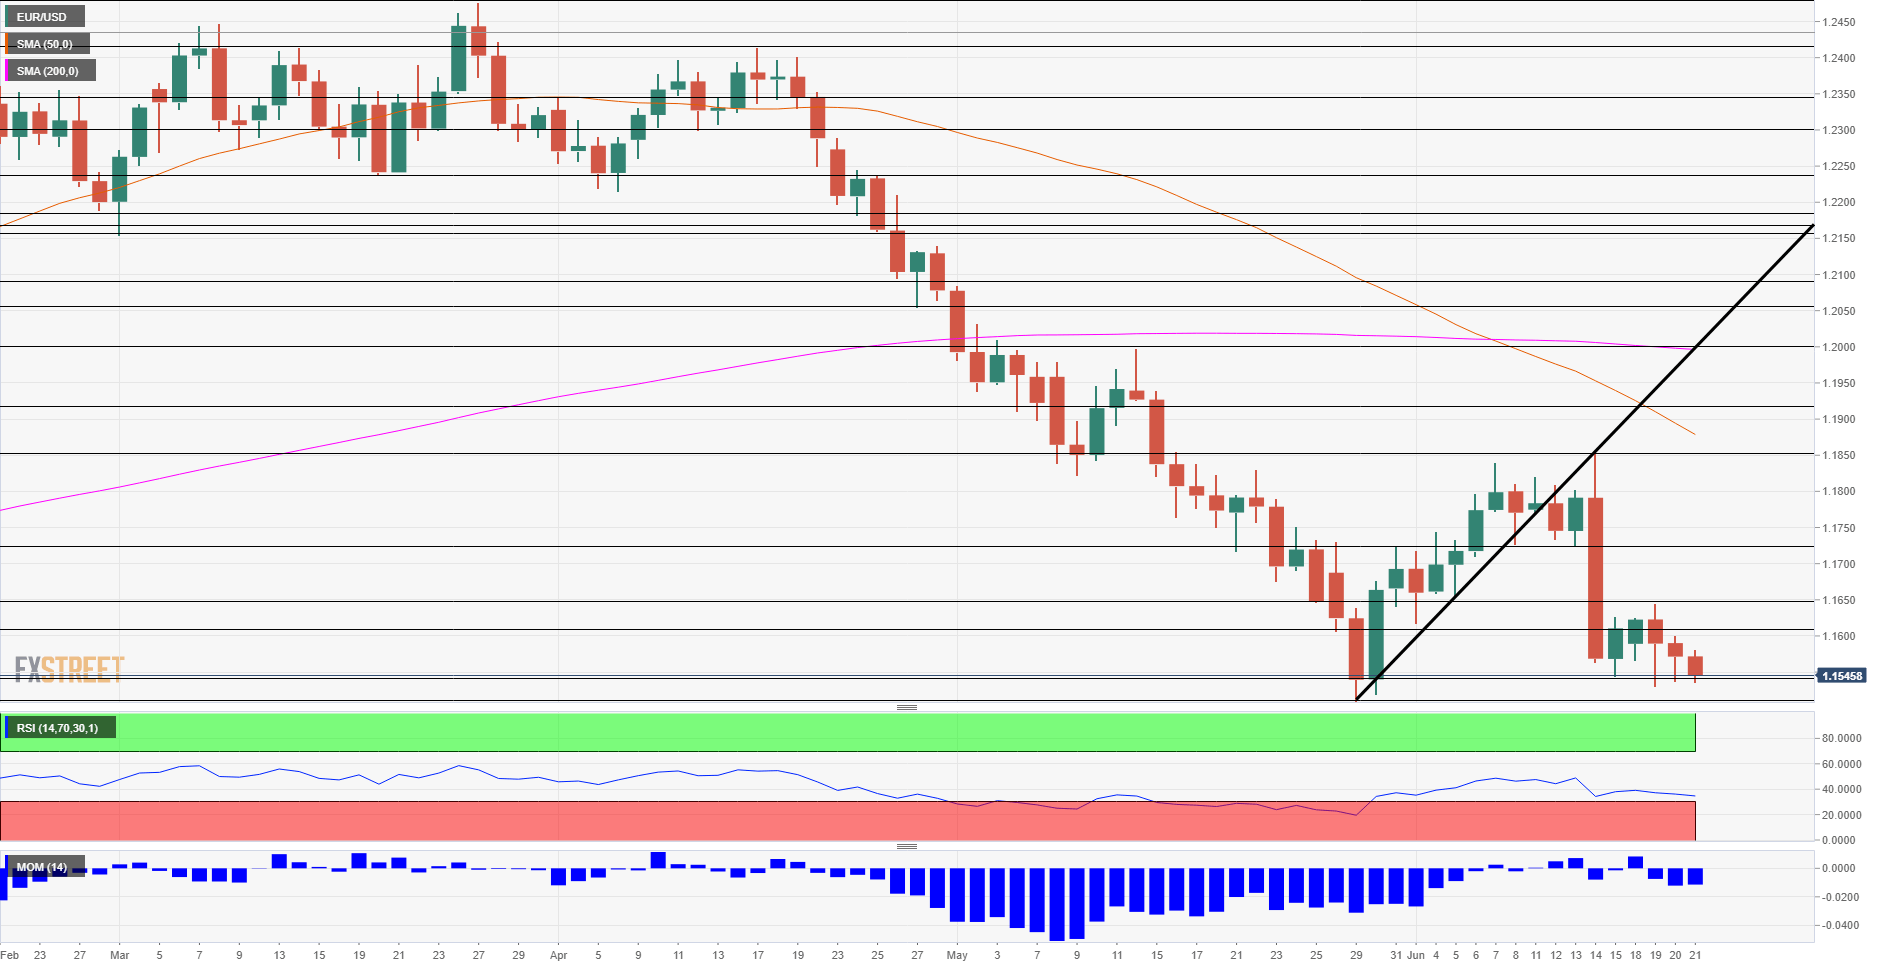 EUR USD technical analysis June 21 2018